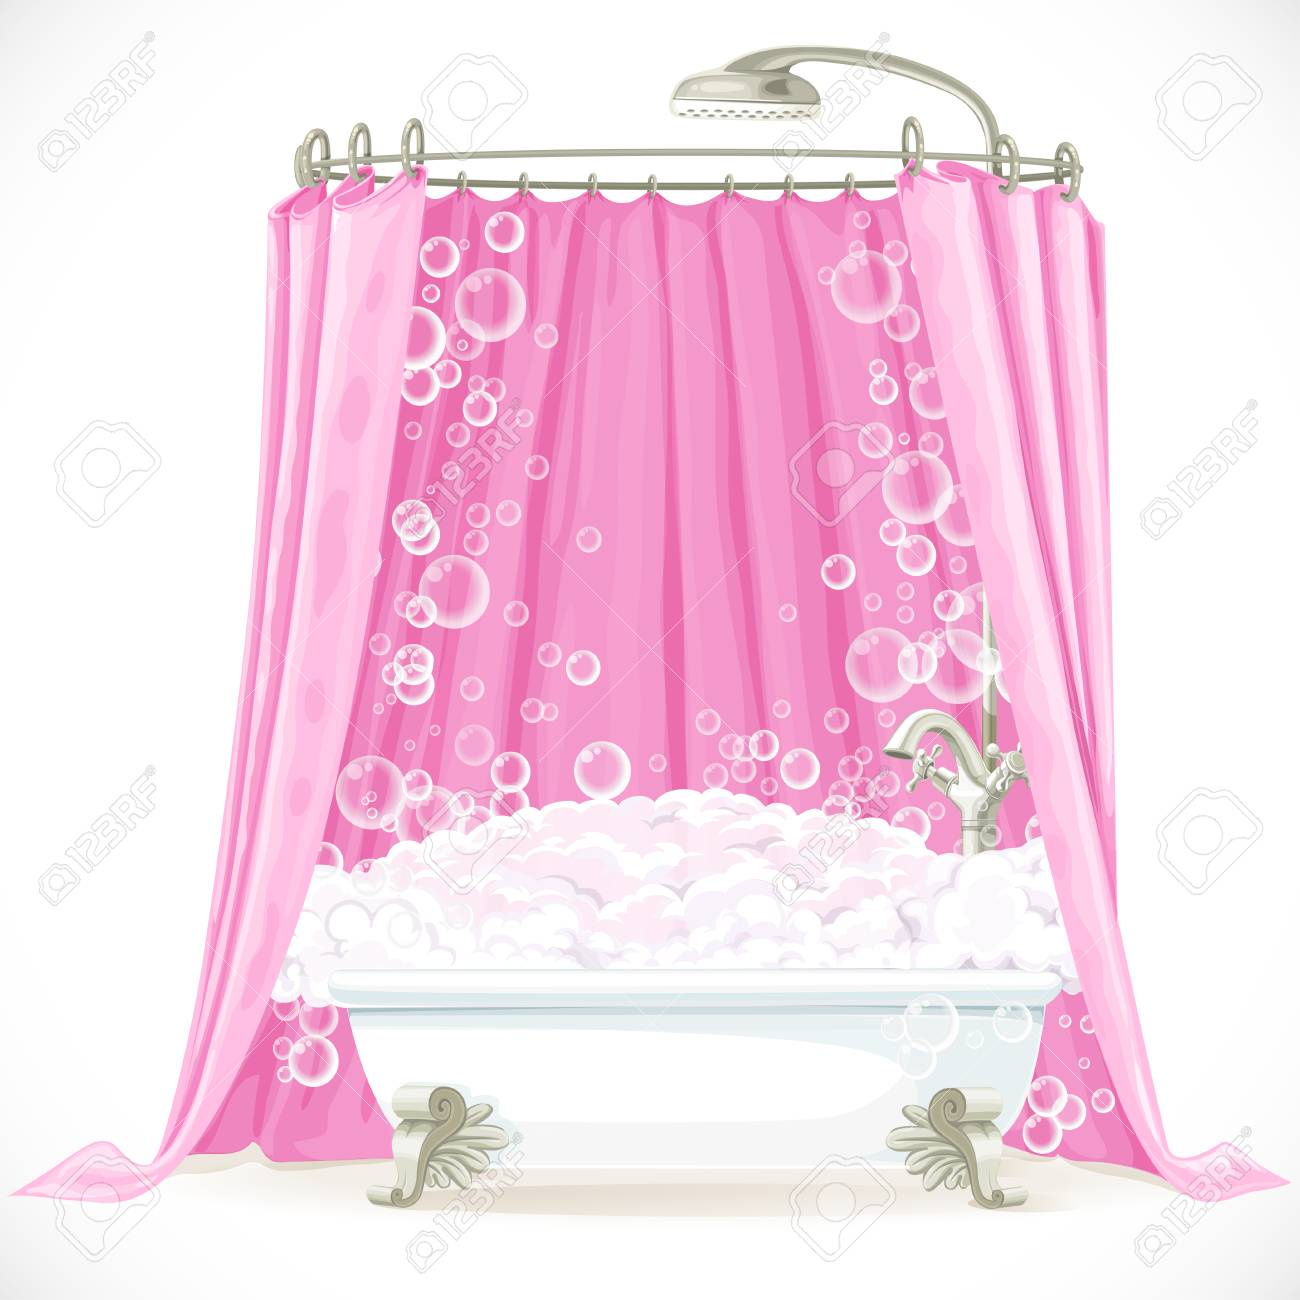 Vintage Claw Foot Bathtub And A Pink Curtain On The Hoop